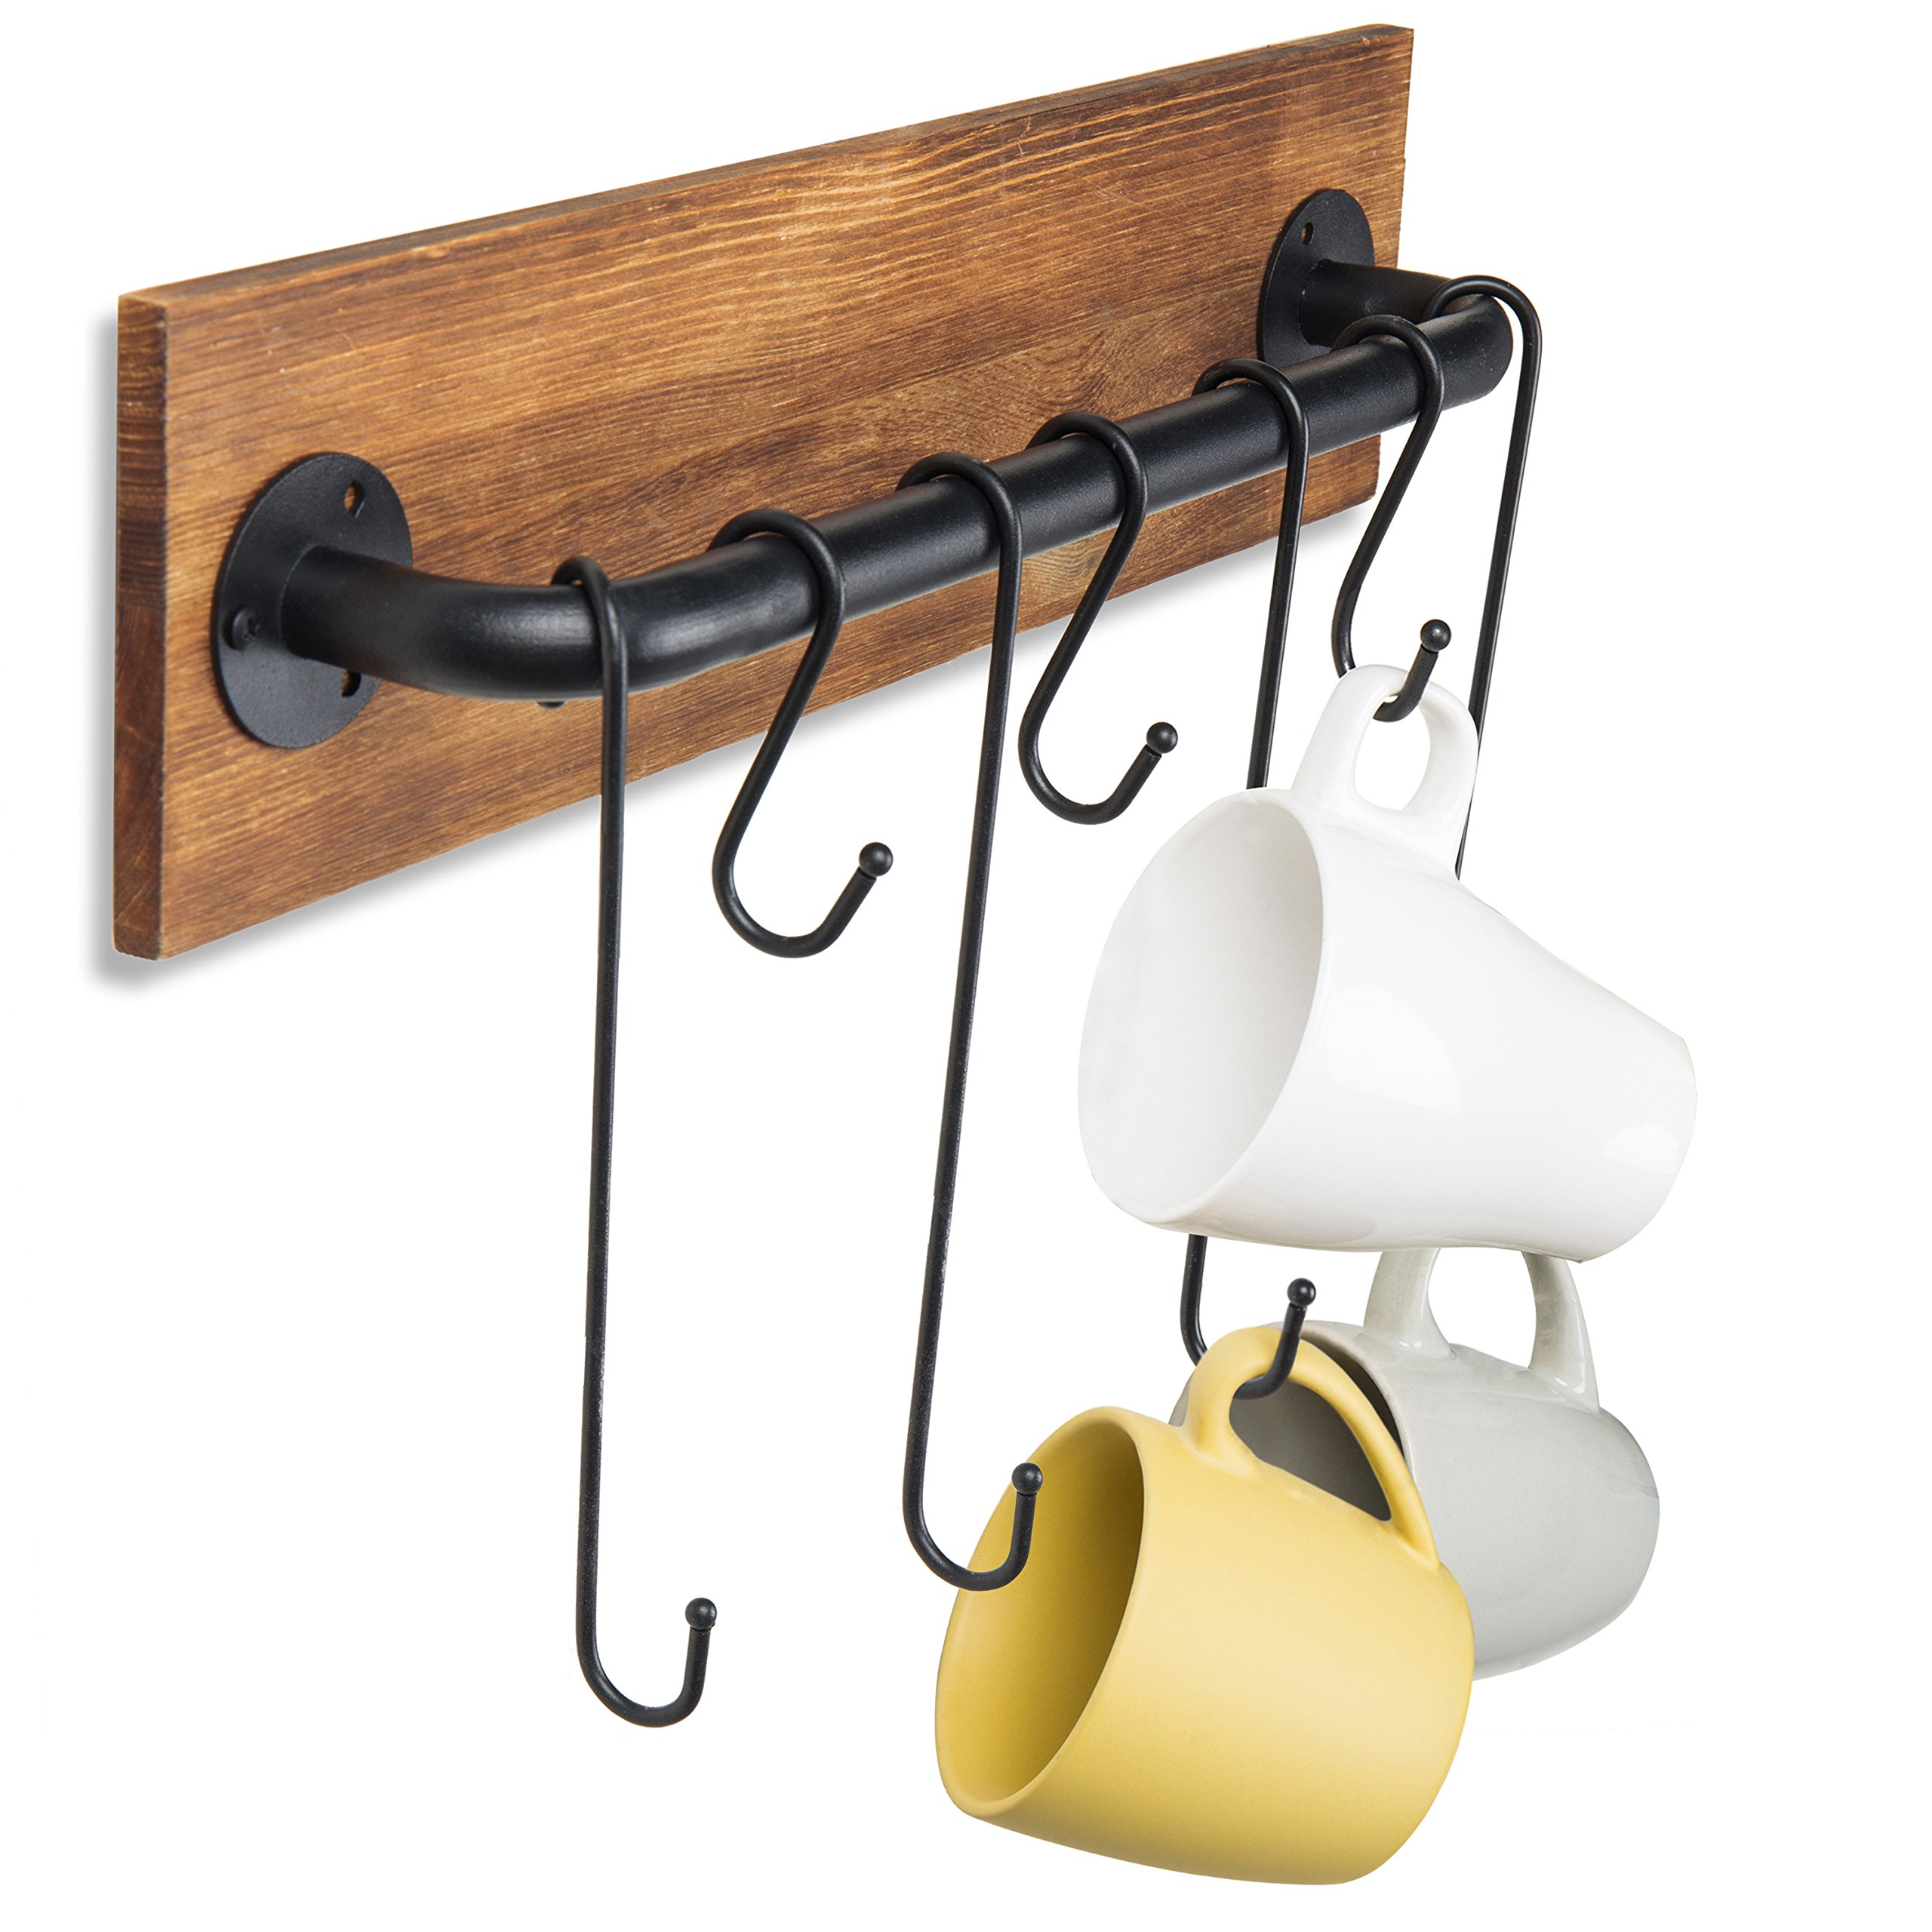 MyGift 7-Hook Rustic Wood & Metal Wall-Mounted Cup Rack by MyGift